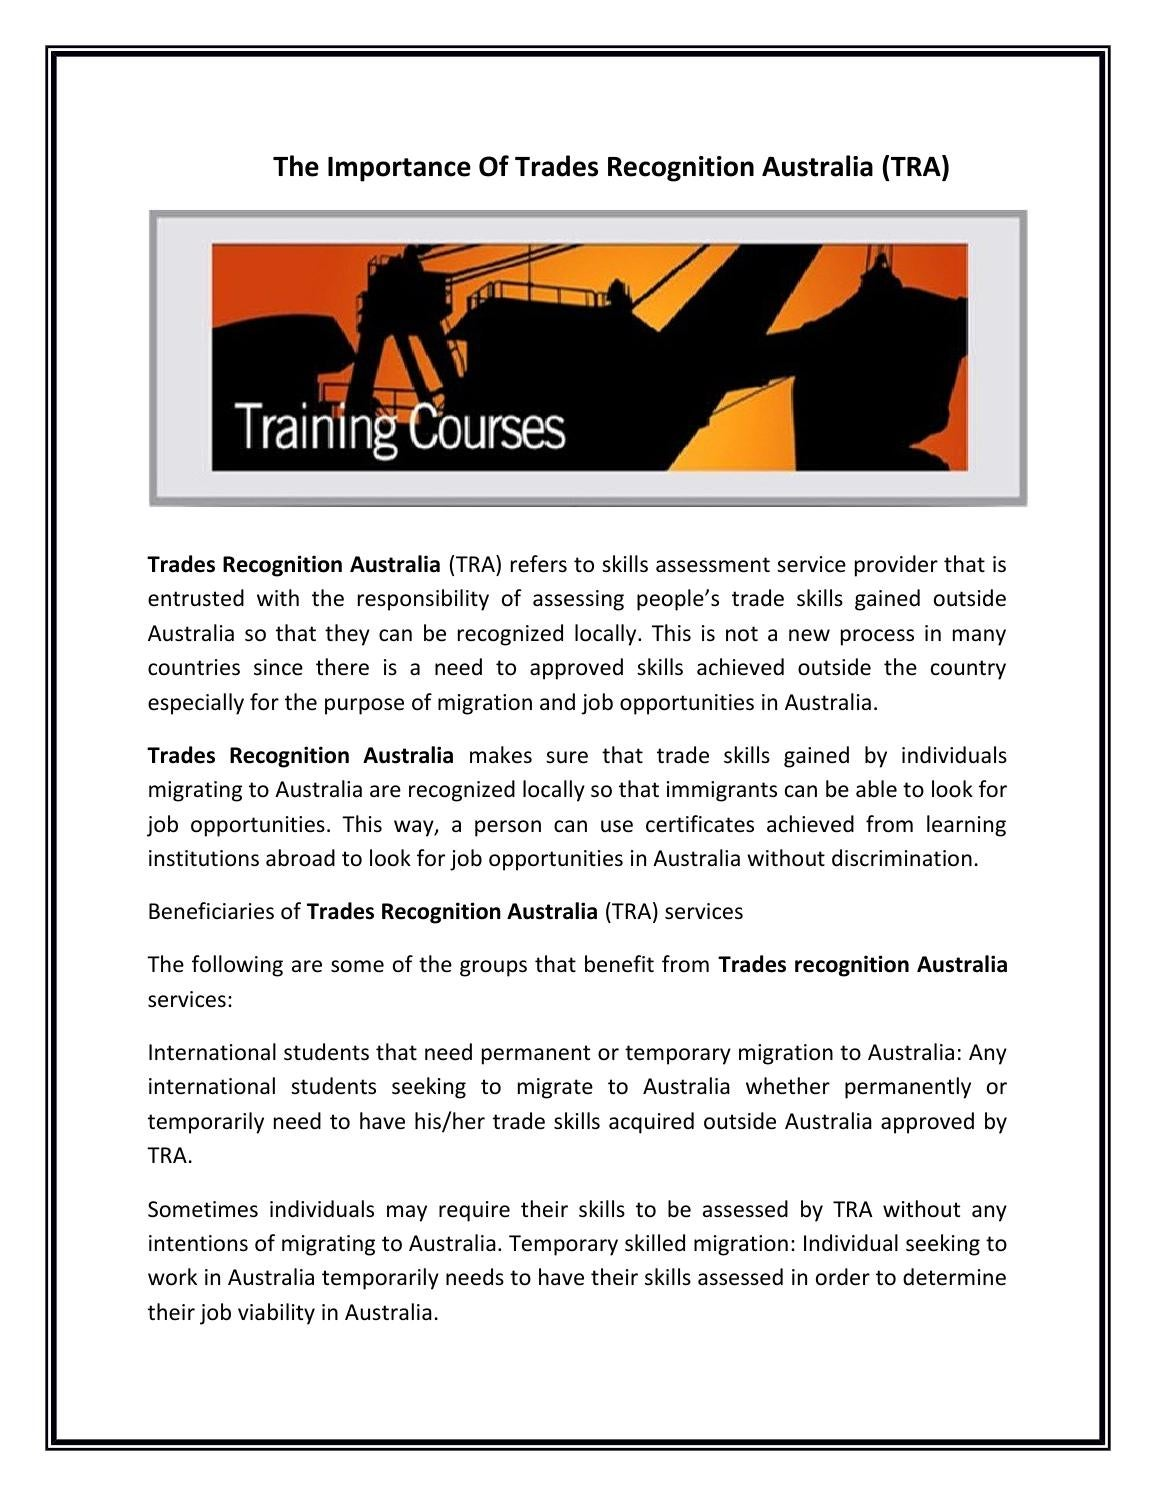 the importance of international trade to australia The benefits that can be identified with reference to international trade are as follows: international trade allows countries to exchange good and services with the use of money as a medium of exchange the benefits of international trade have been the major drivers of growth for the last half of.